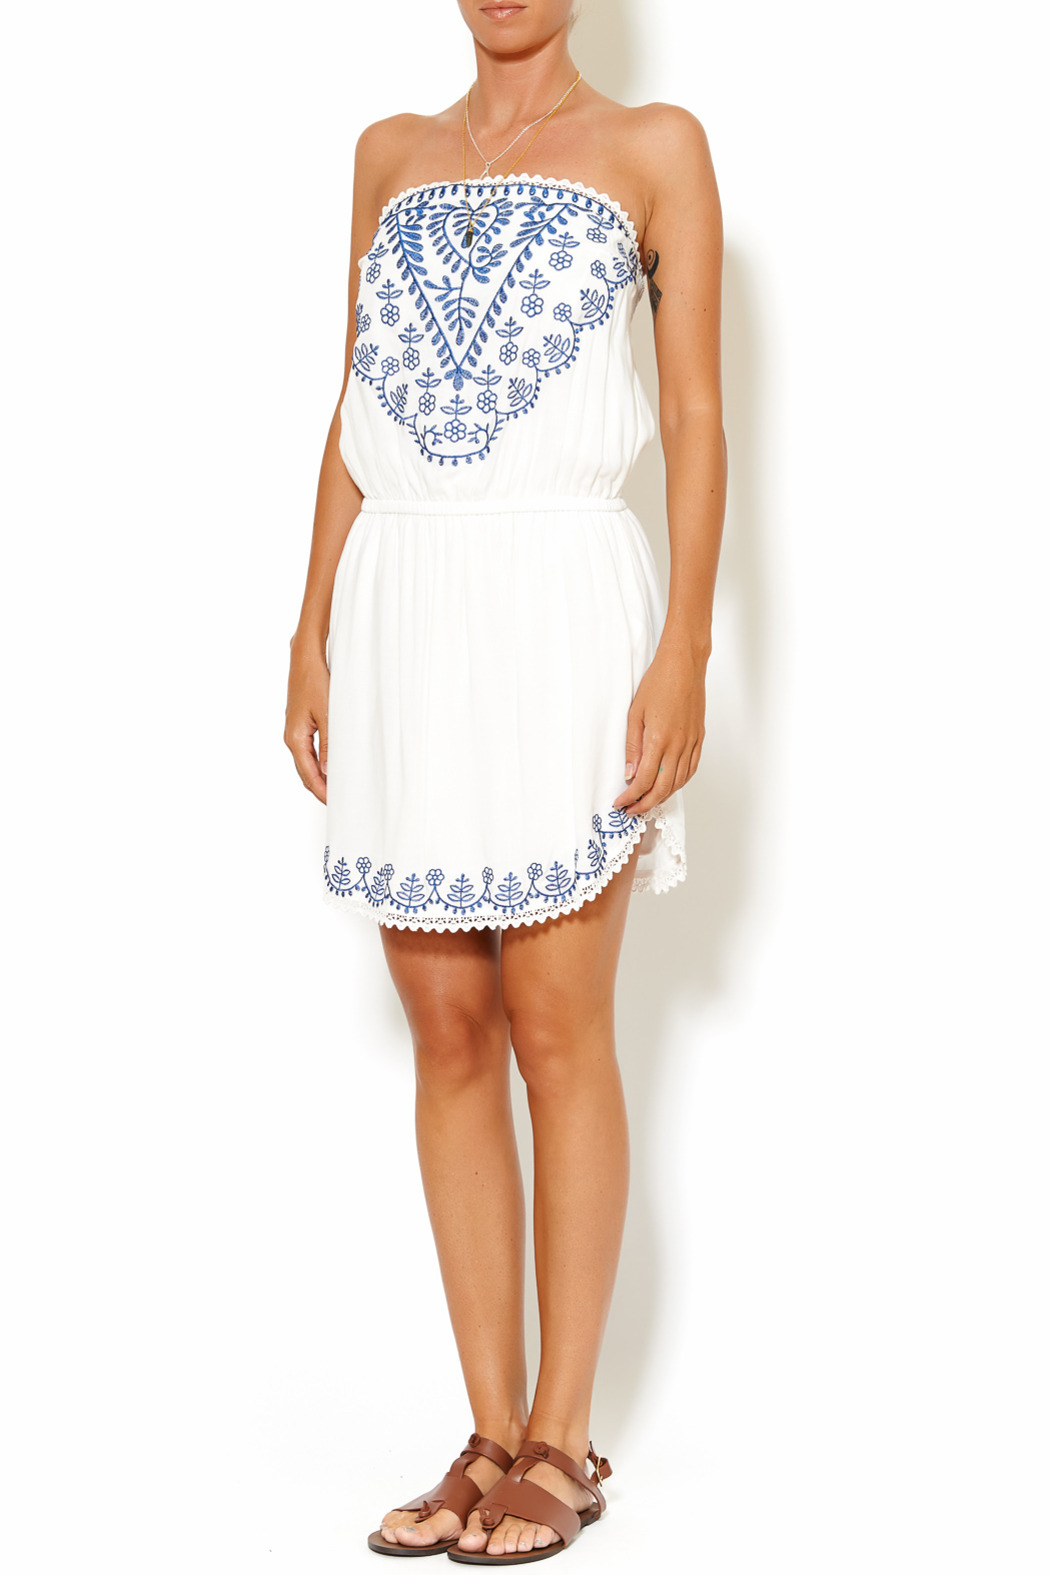 y&i clothing boutique Embroidered Tube Dress - Front Full Image